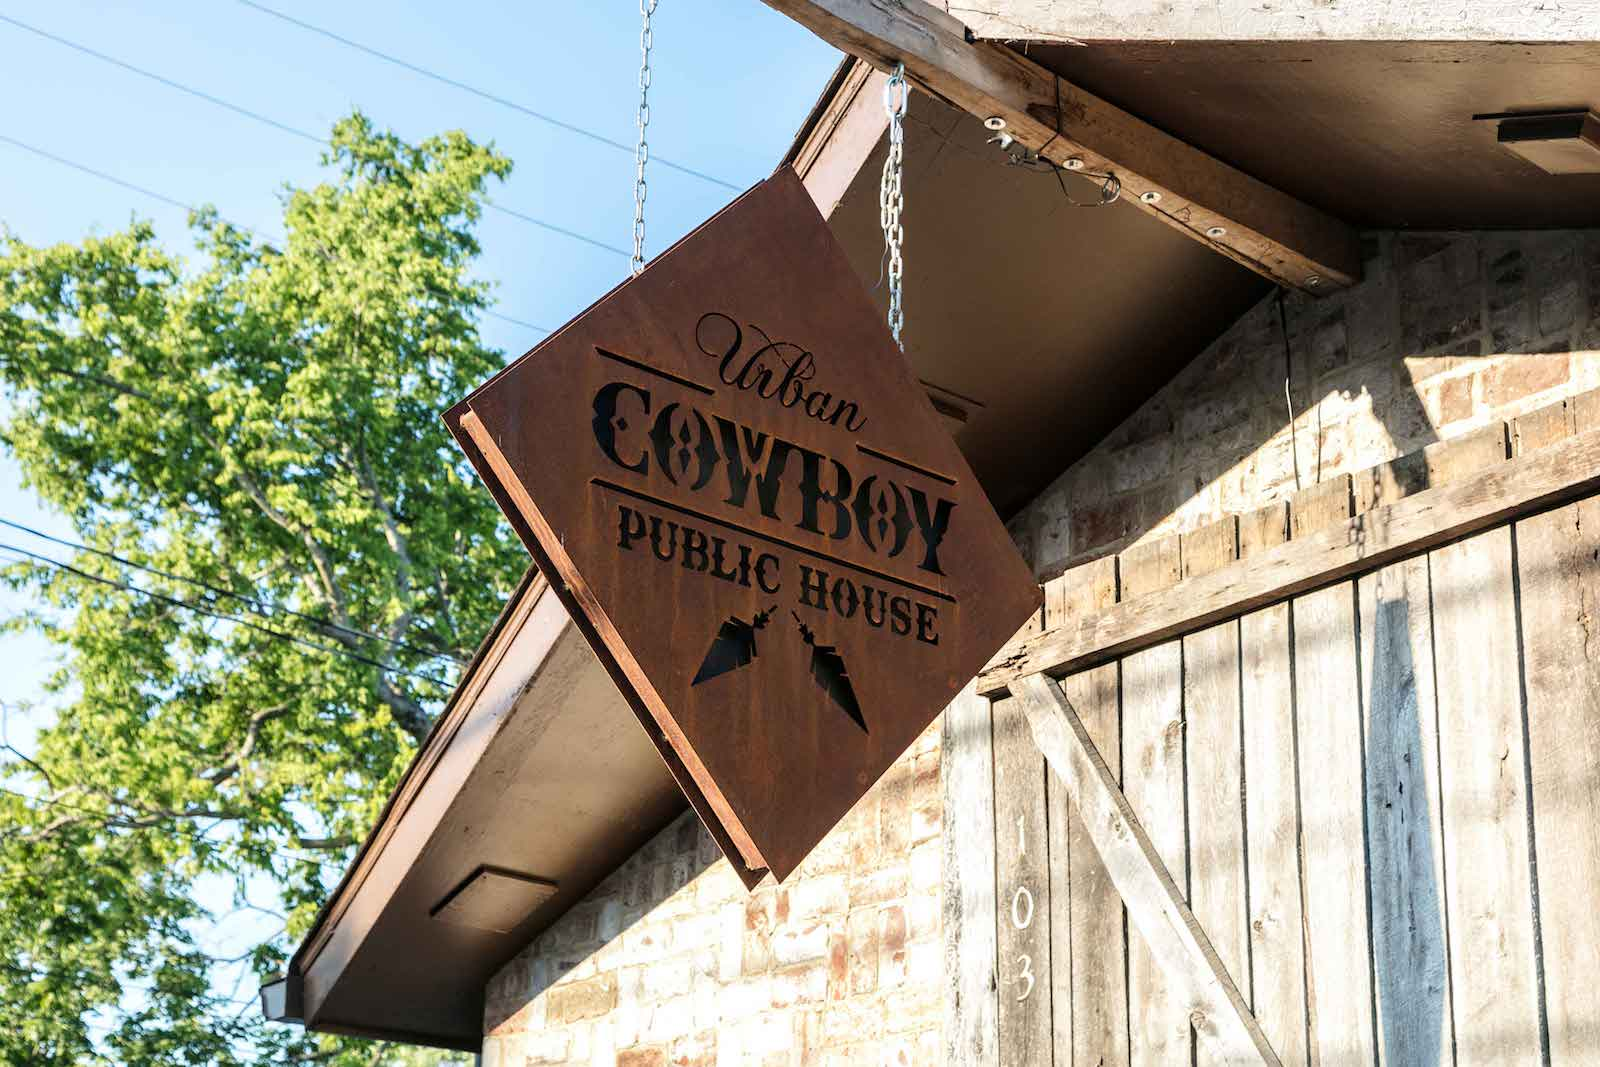 A diamond sign hanging outside the Public House of Urban Cowboy Nashville.